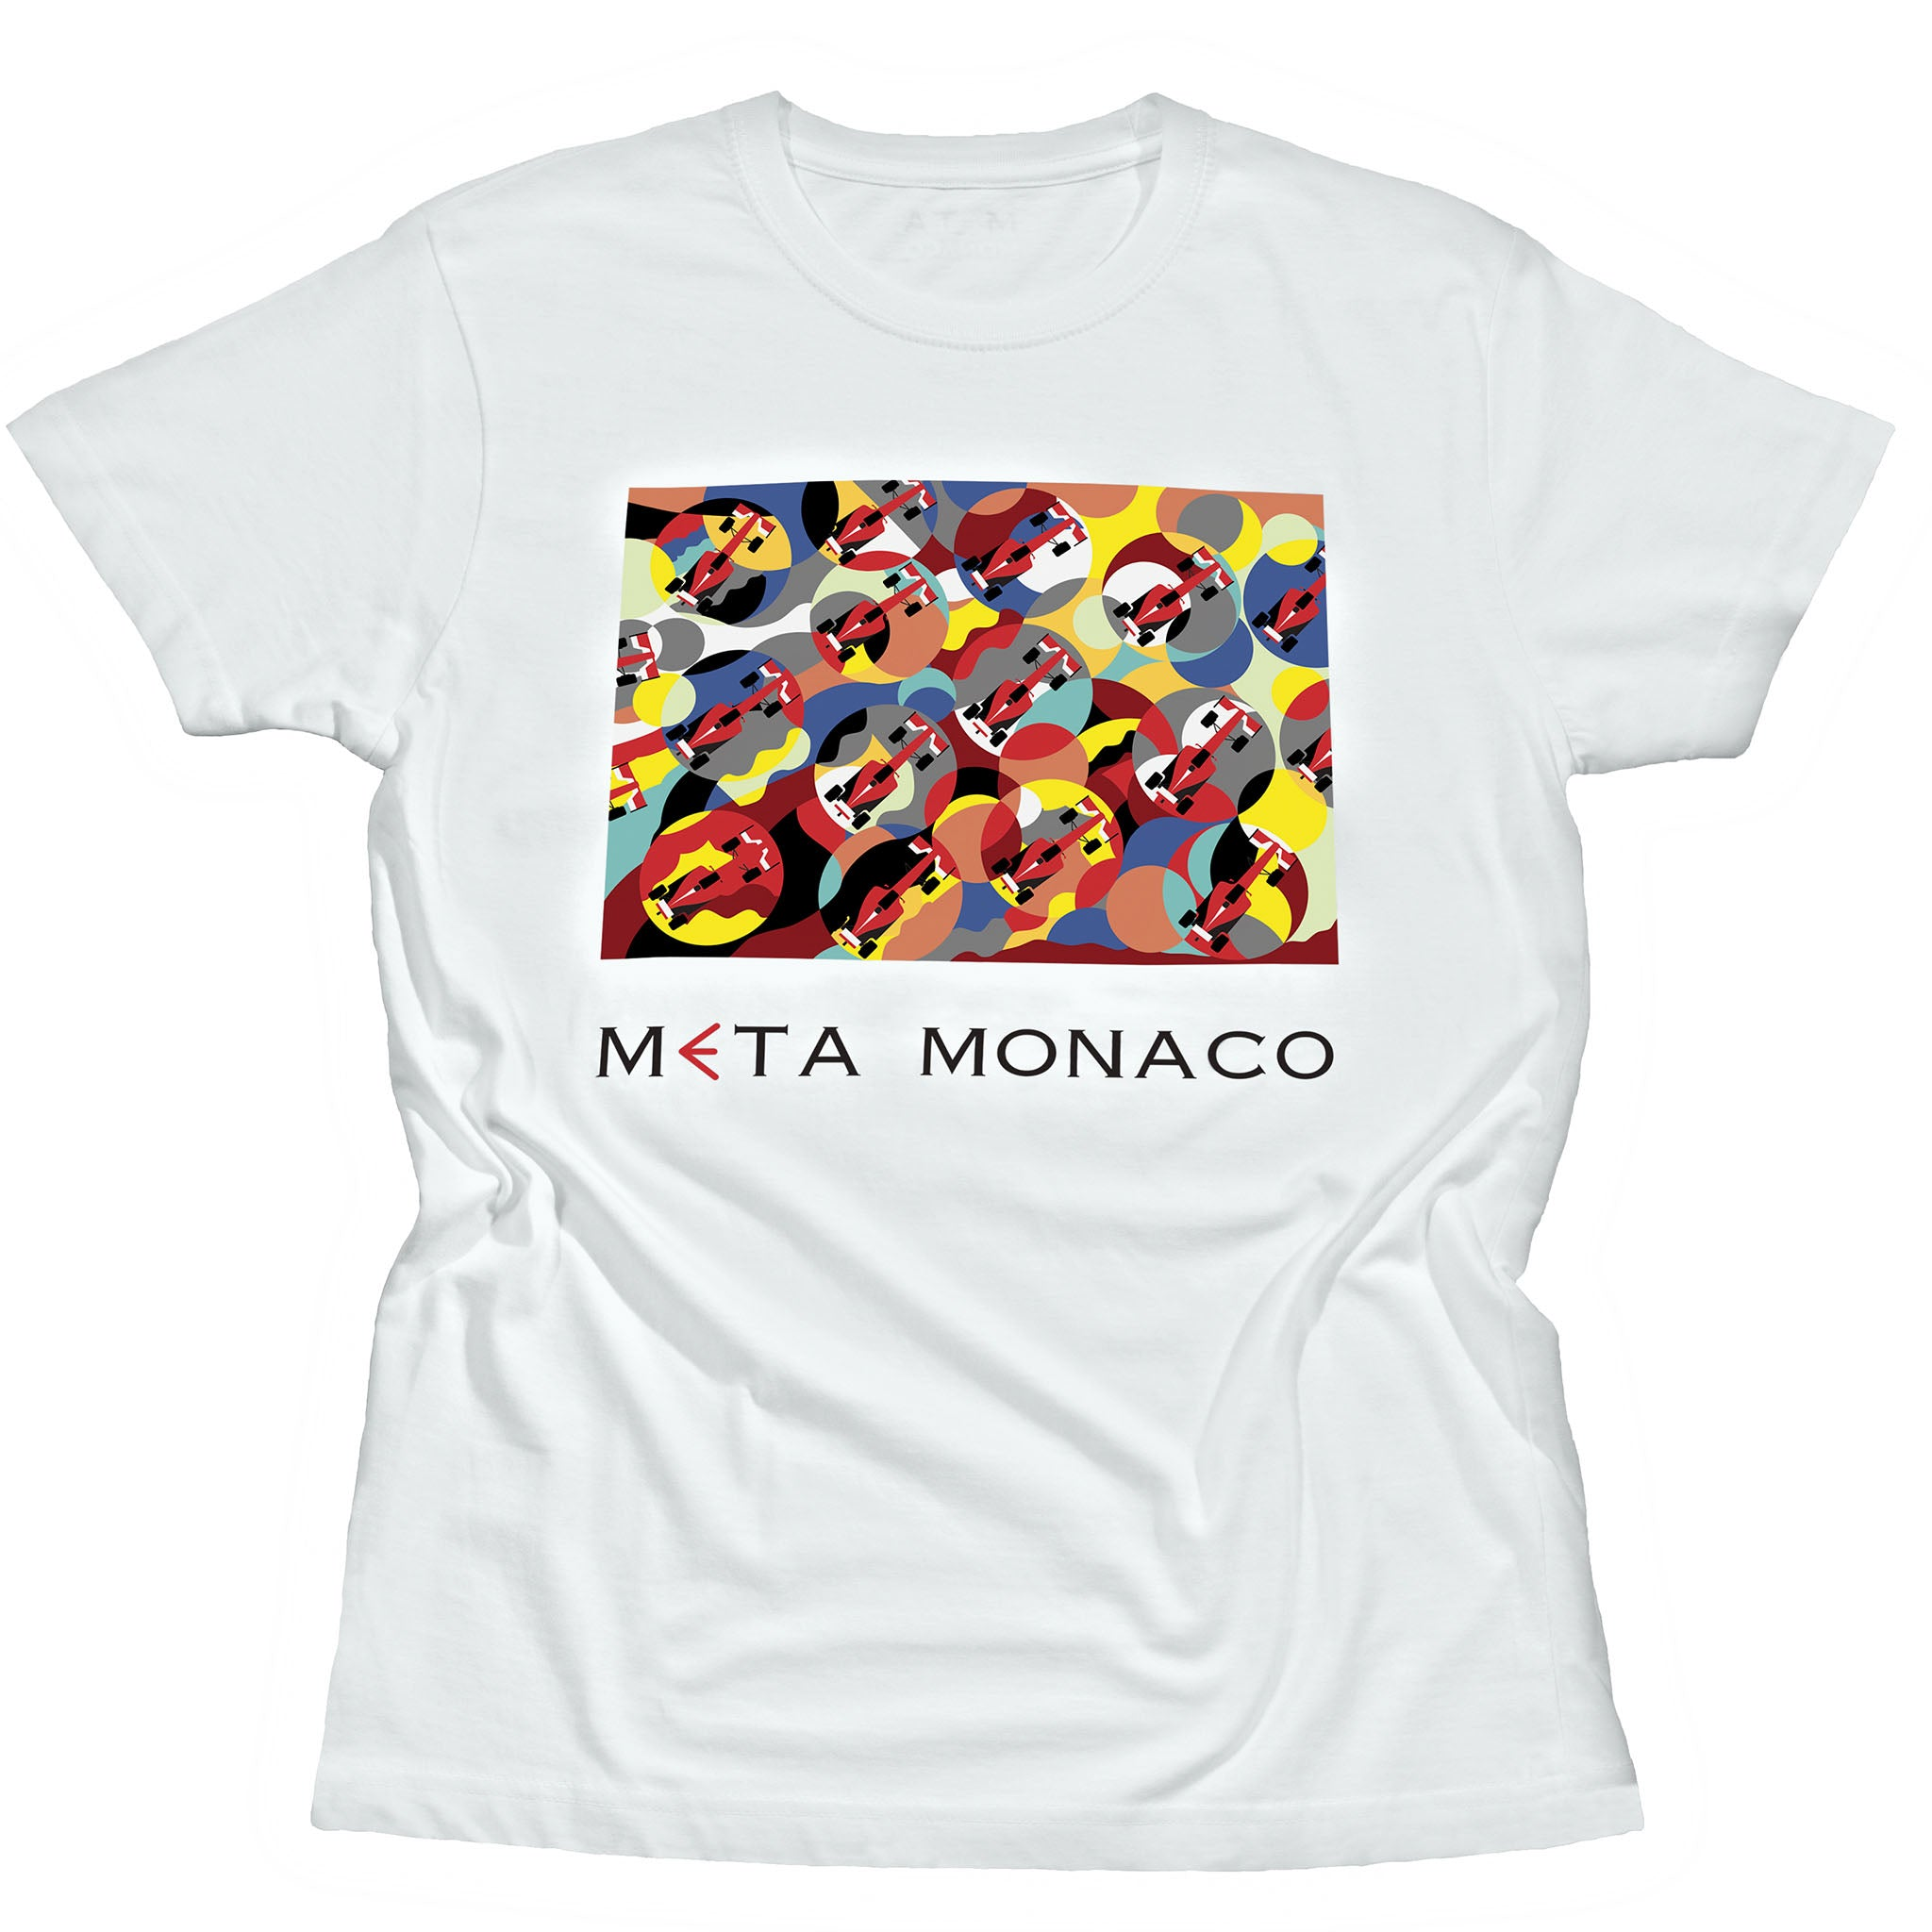 F1 Grand Prix Race Art T-Shirt White